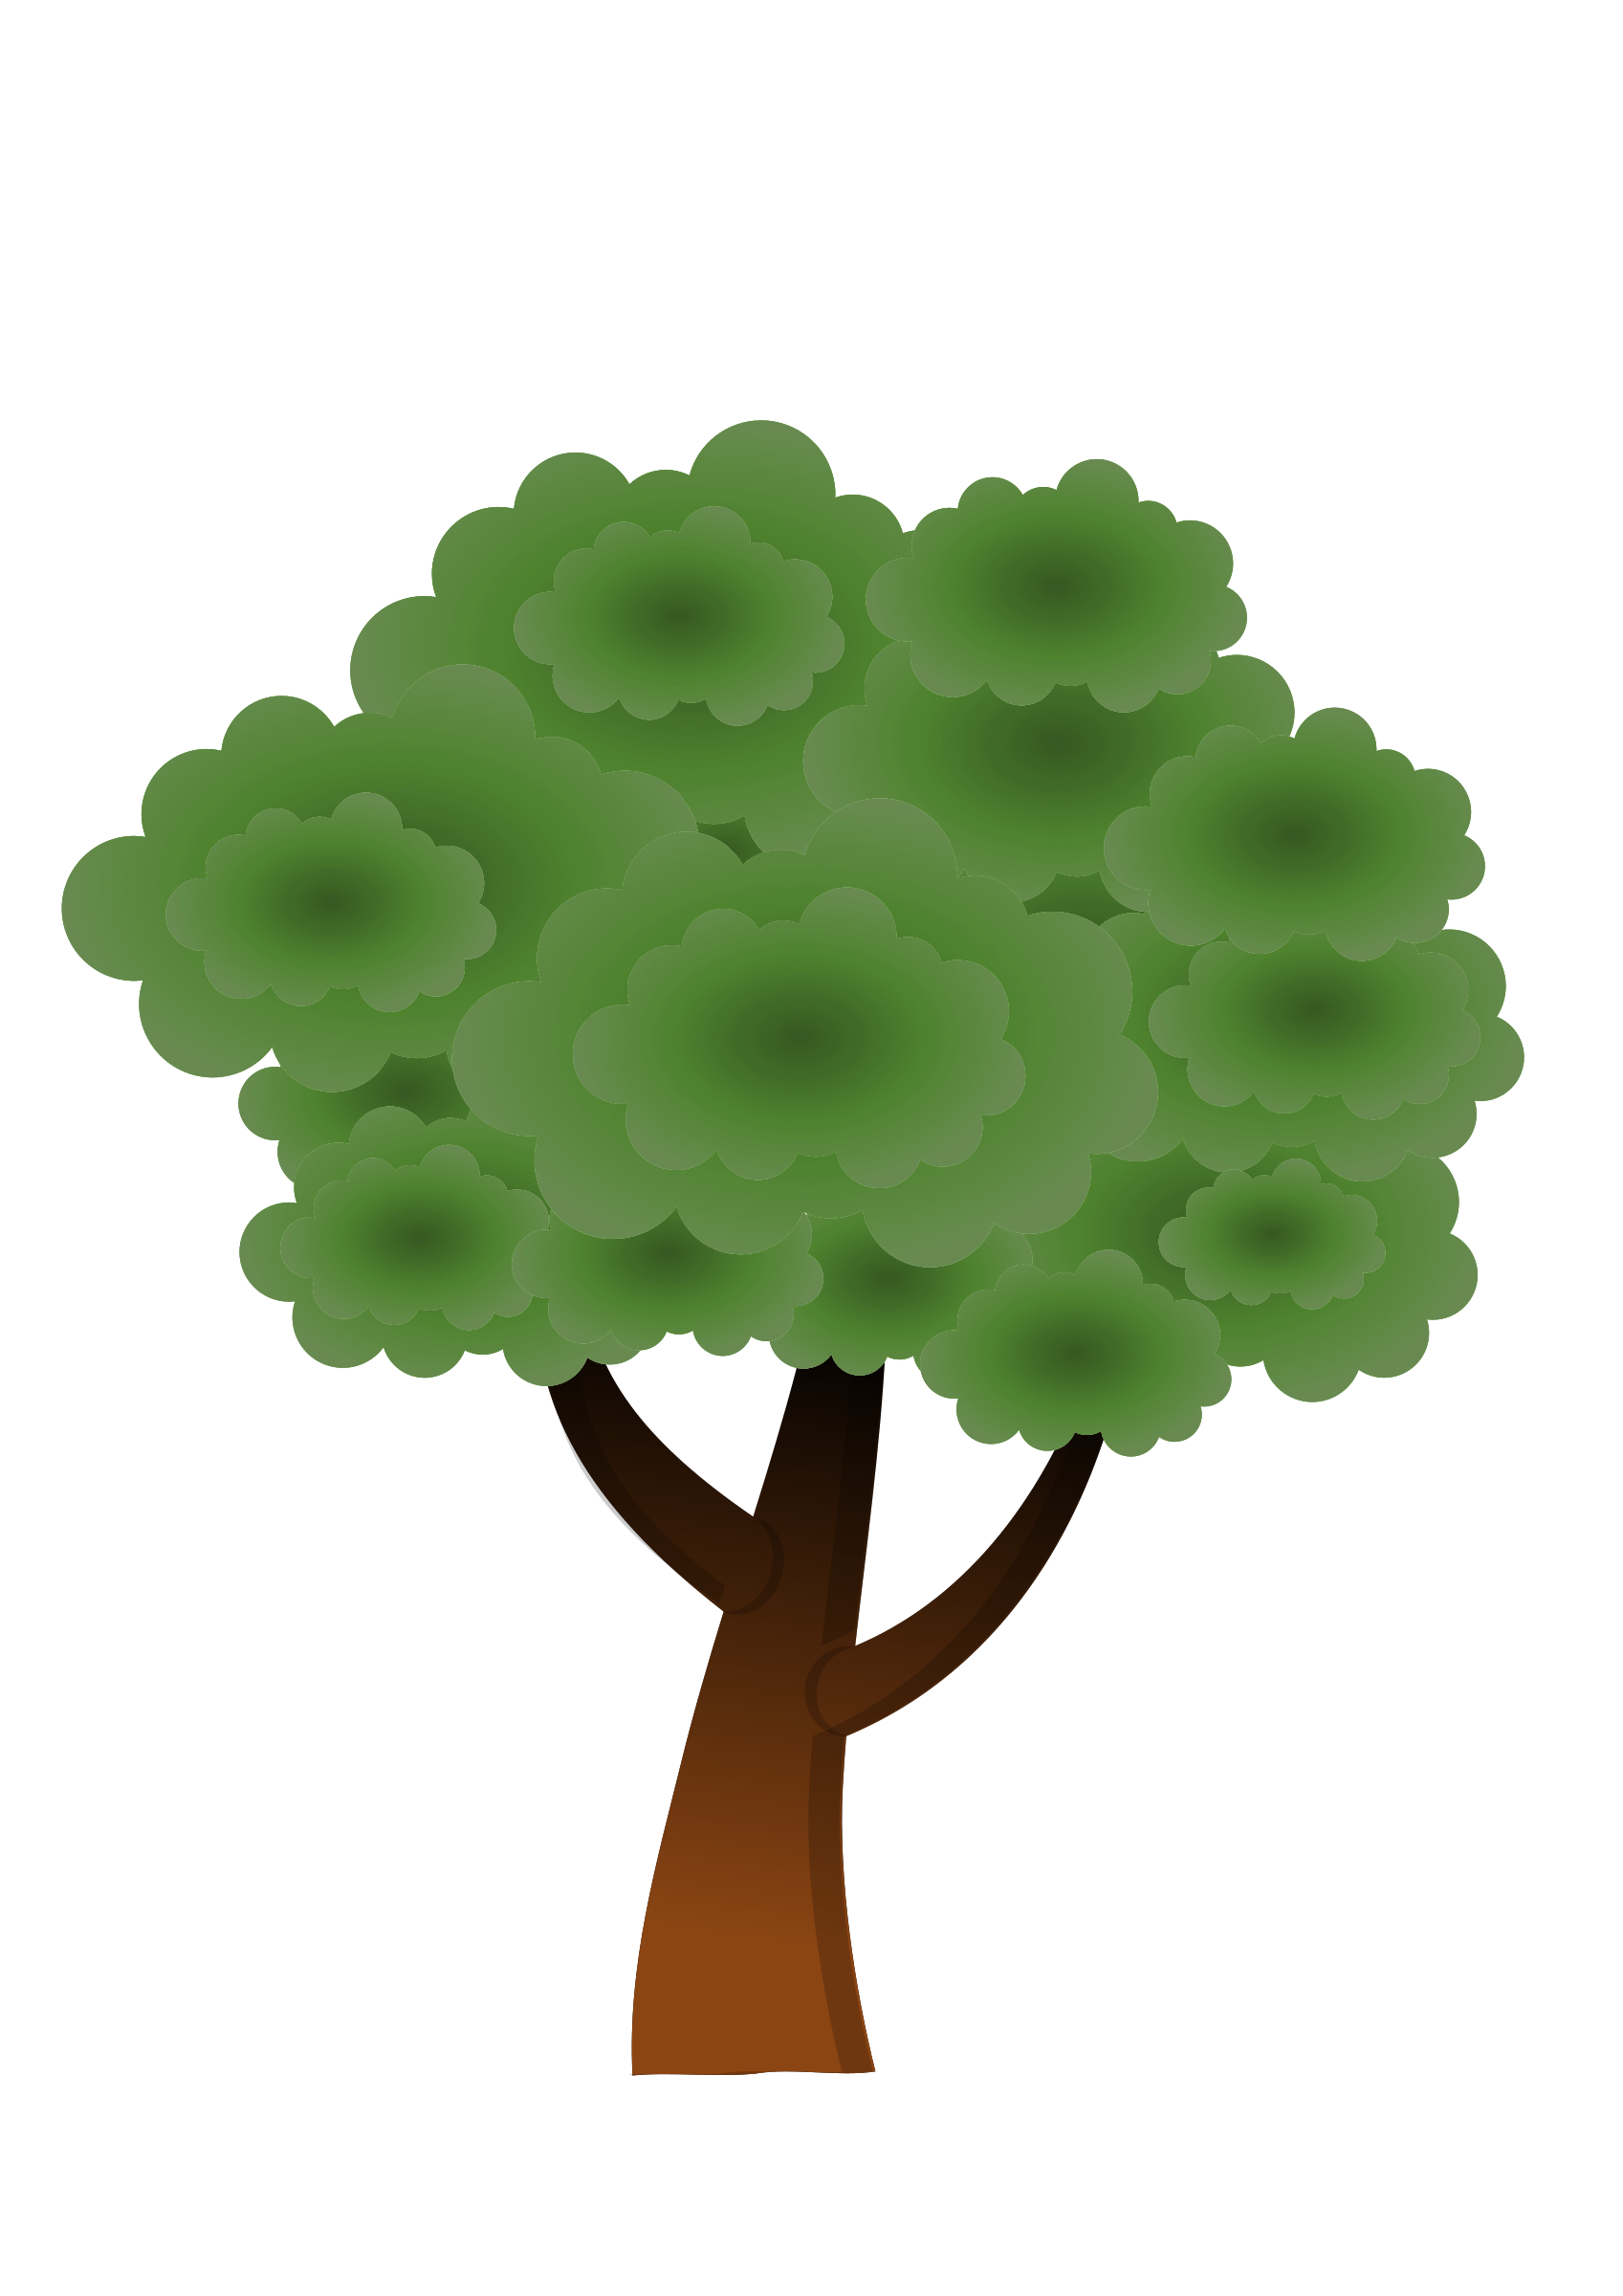 A simple tree #3 by Almeidah